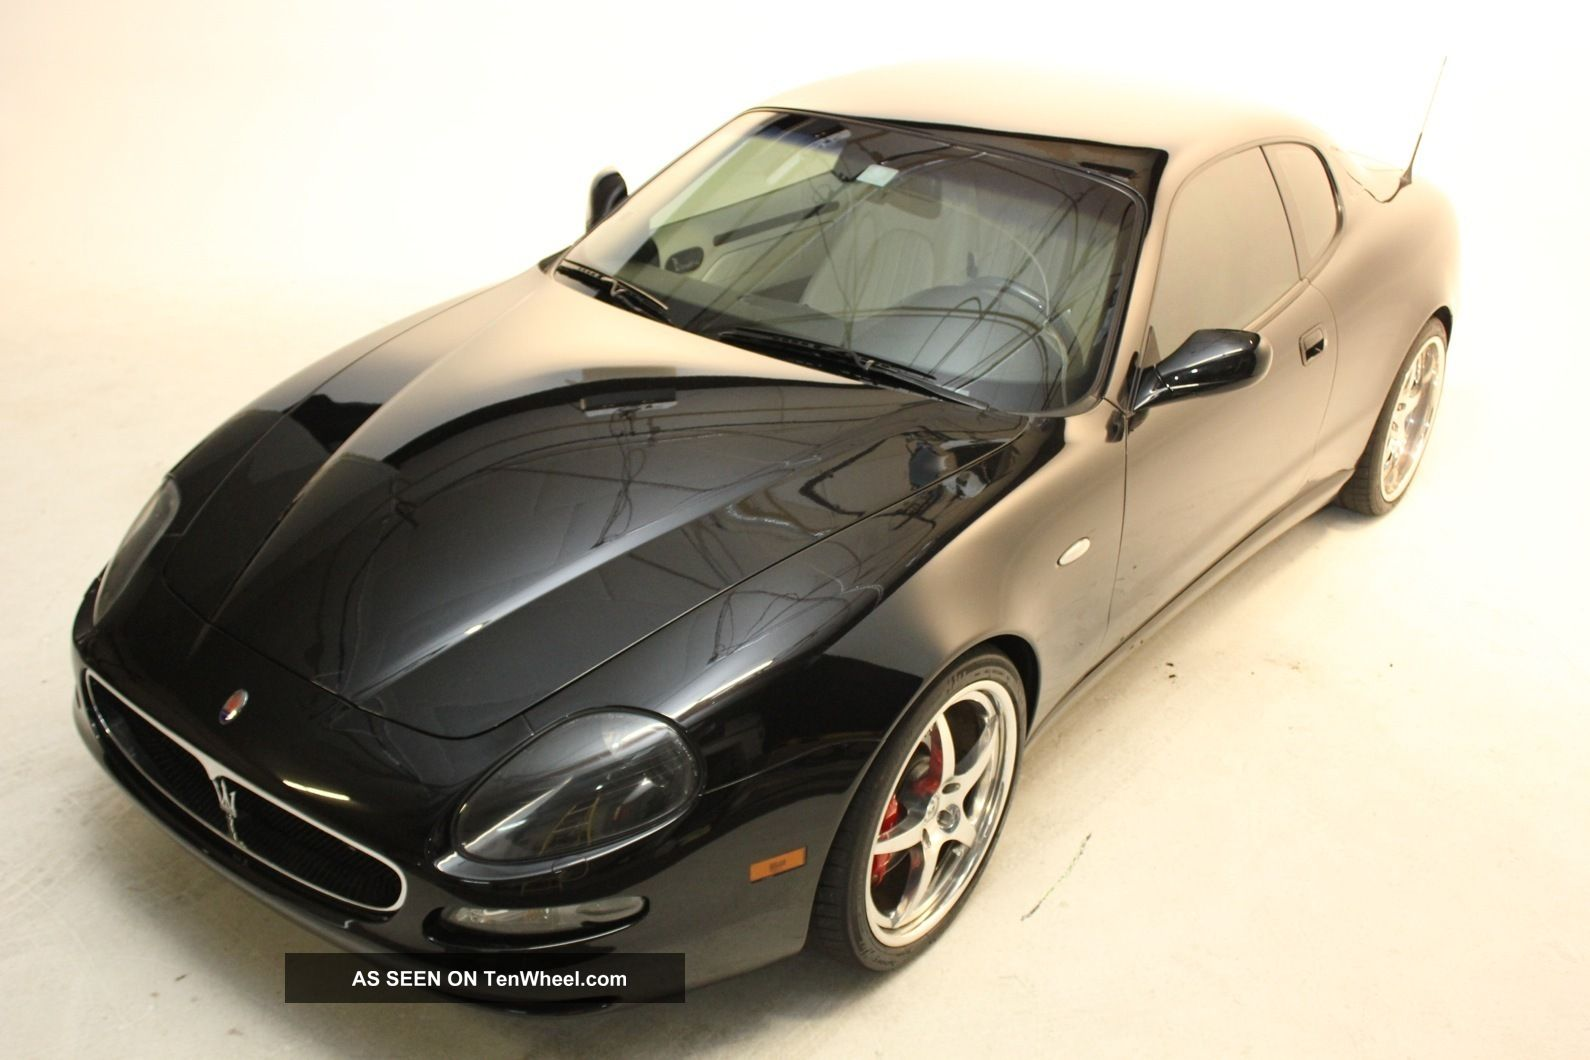 2002 Maserati Coupe Gt Tubi Exhaust,  Hre Rims Coupe photo